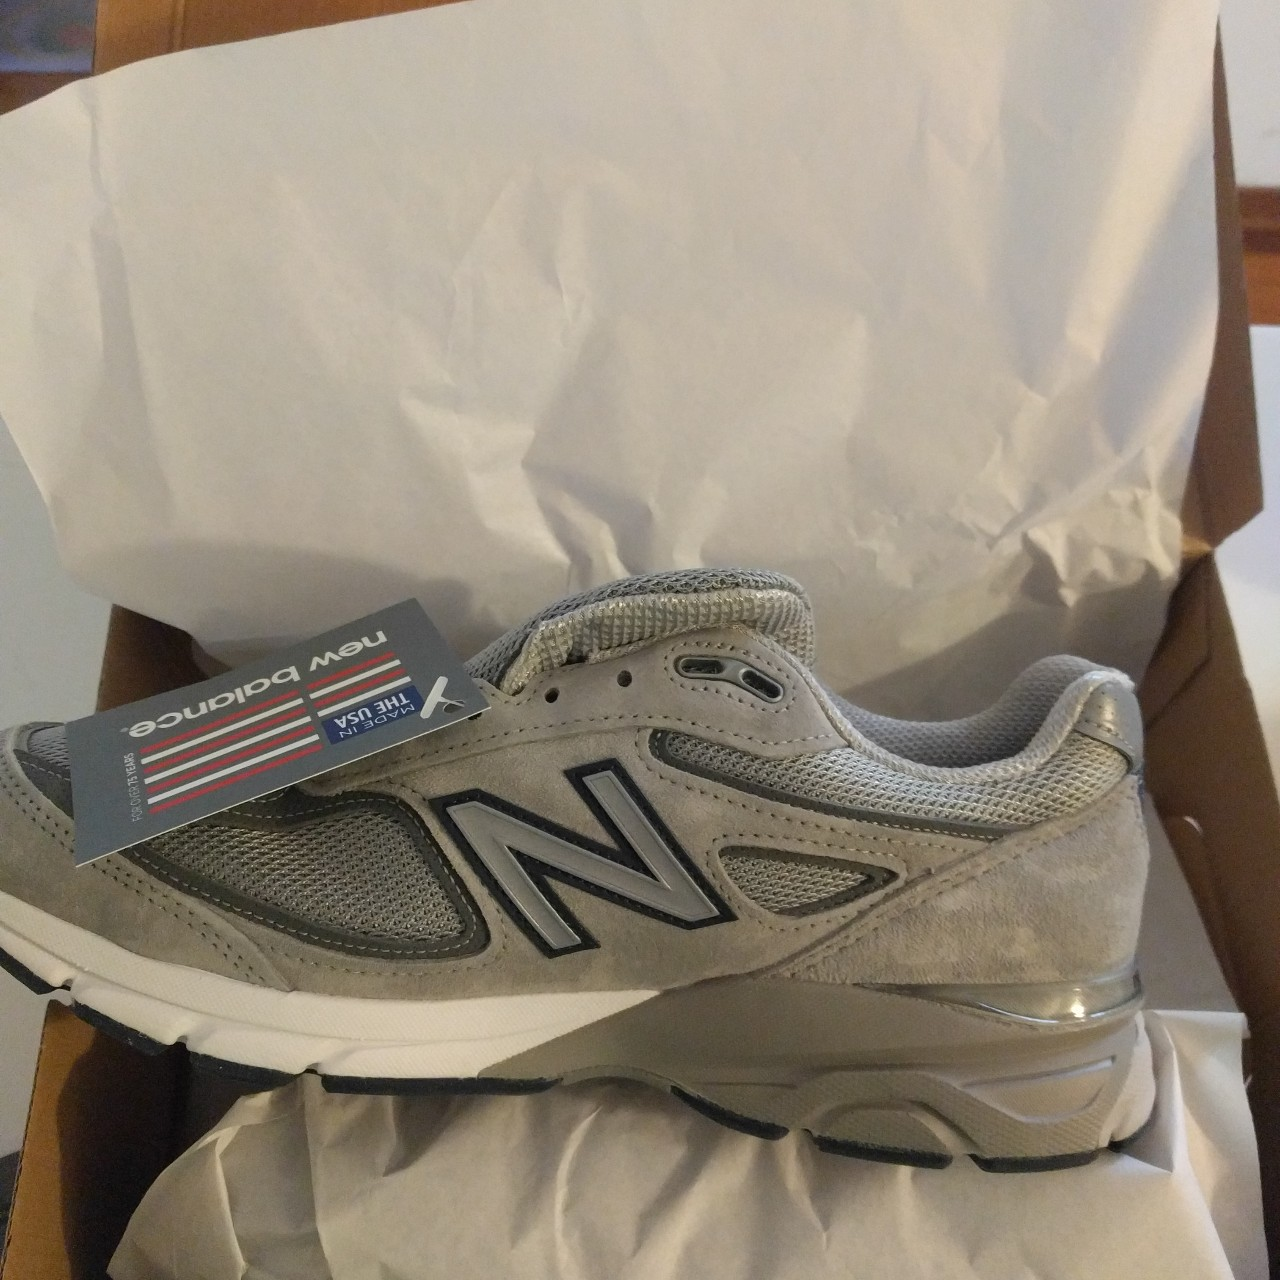 cheaper b2789 4fc4d New balance 990 v4 made in 1982 - US10 - Depop